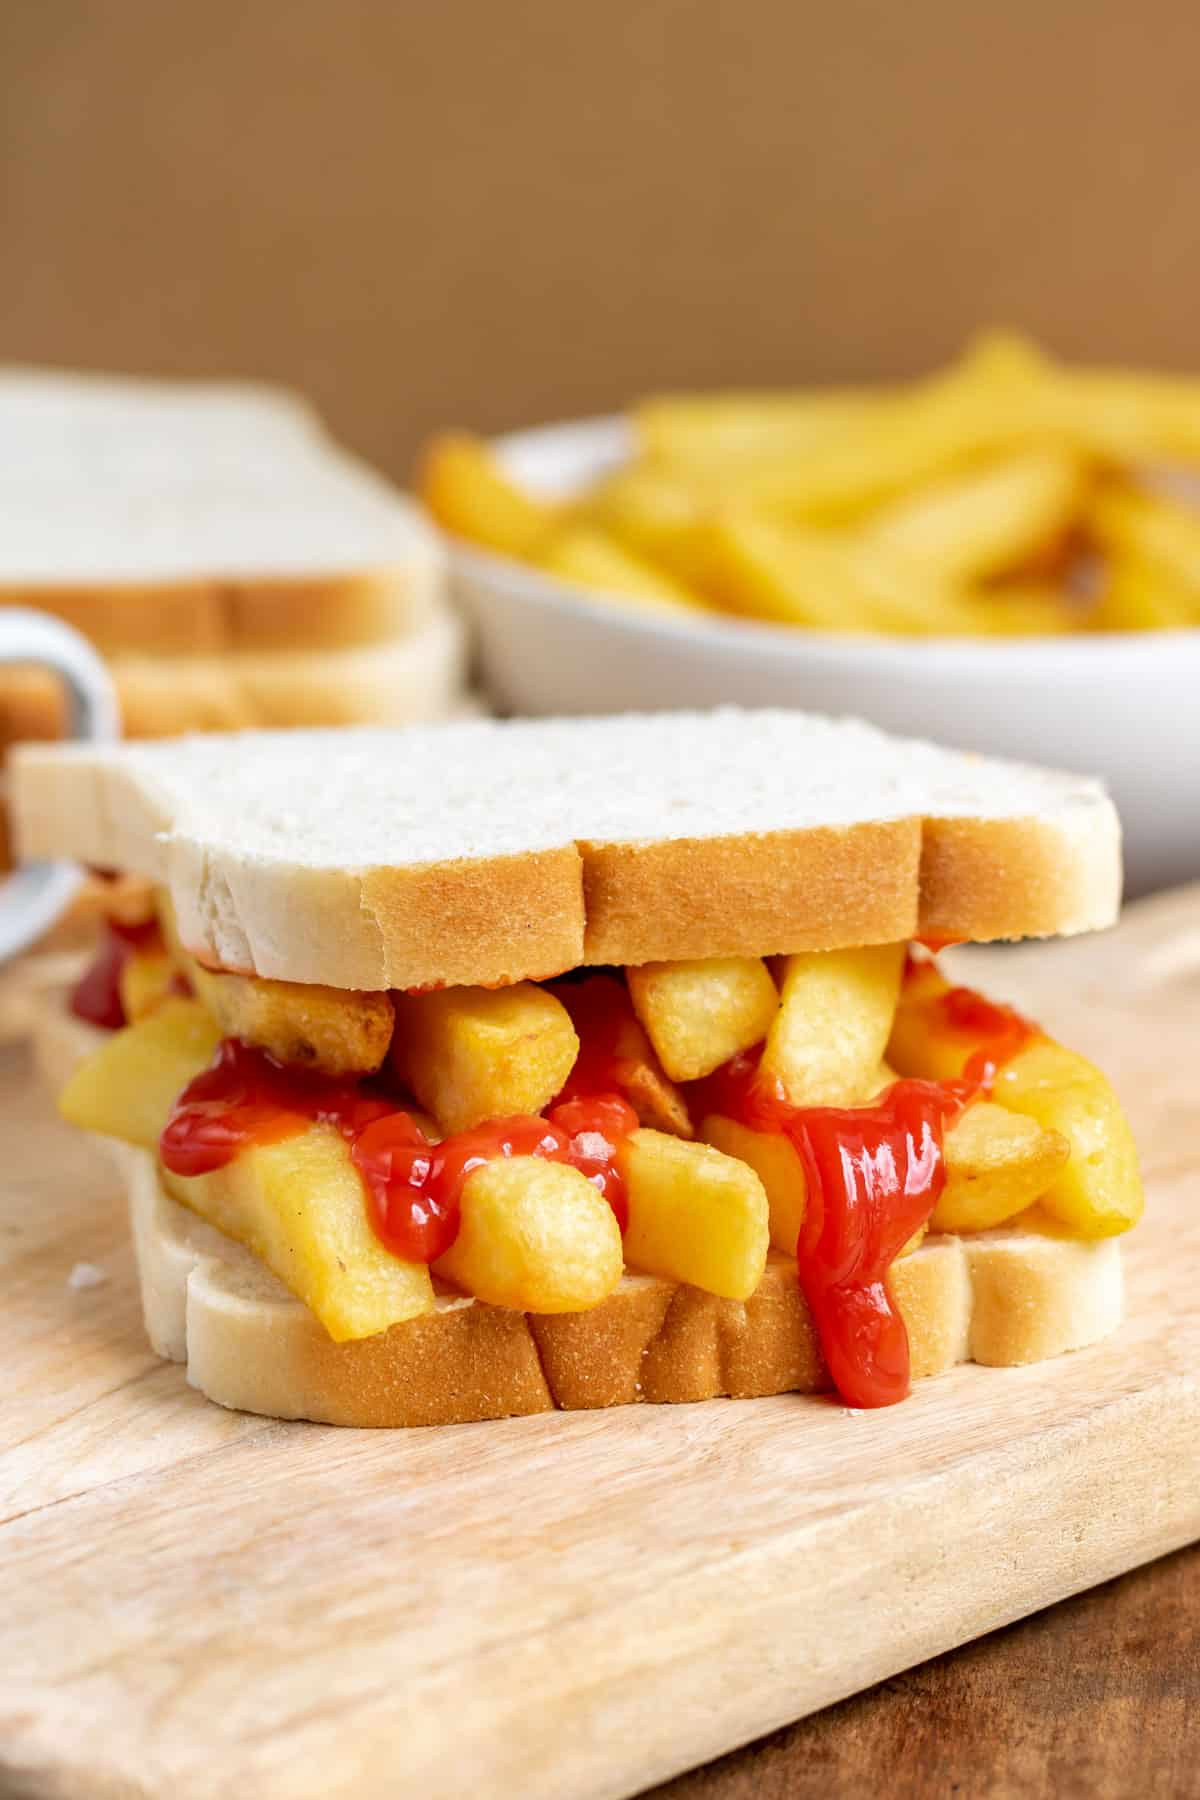 Close up of a french fry sandwich.